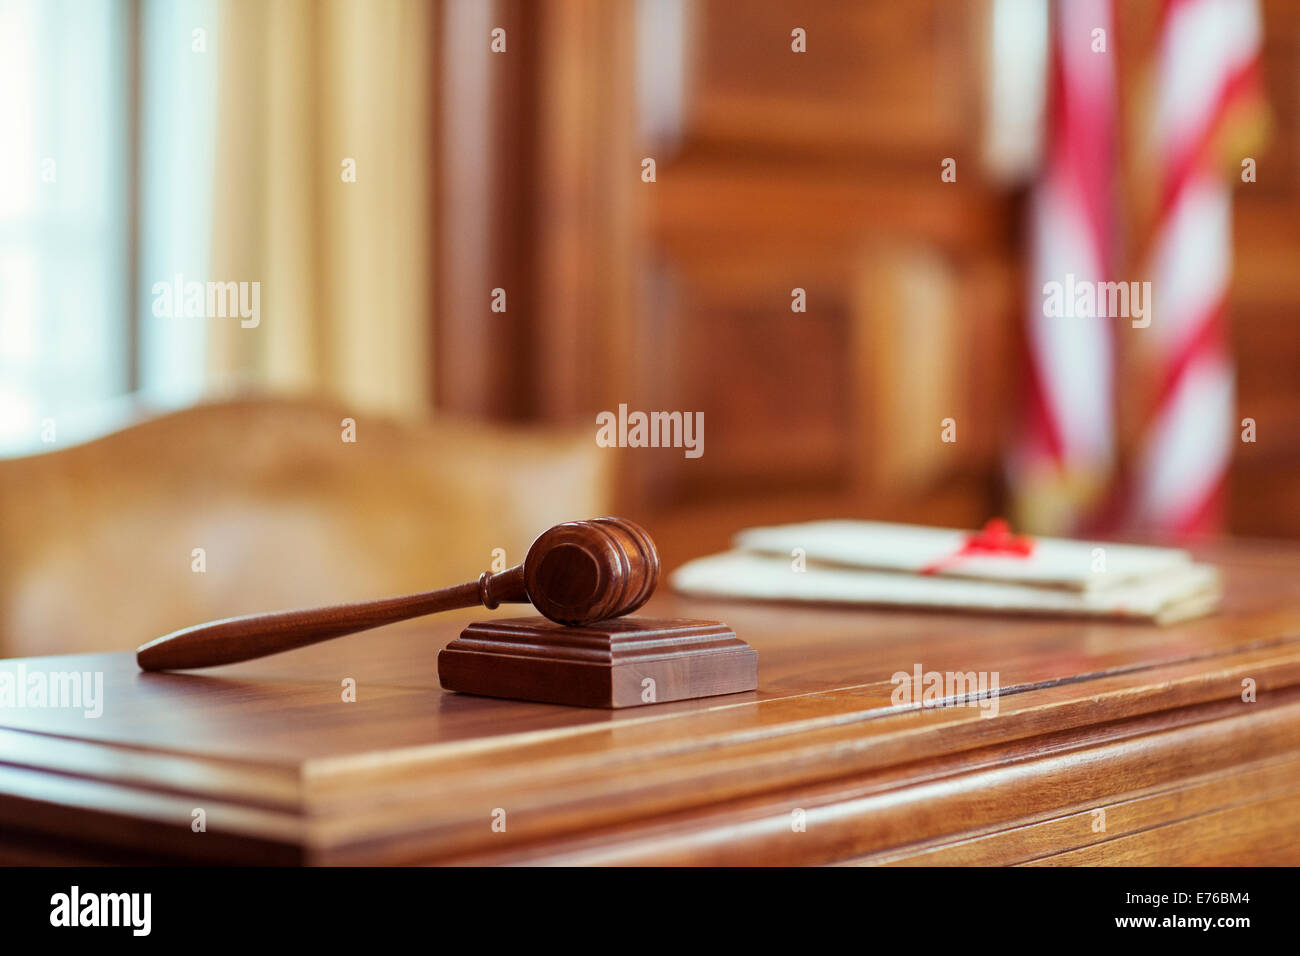 Gavel laying on judges bench in courtroom - Stock Image